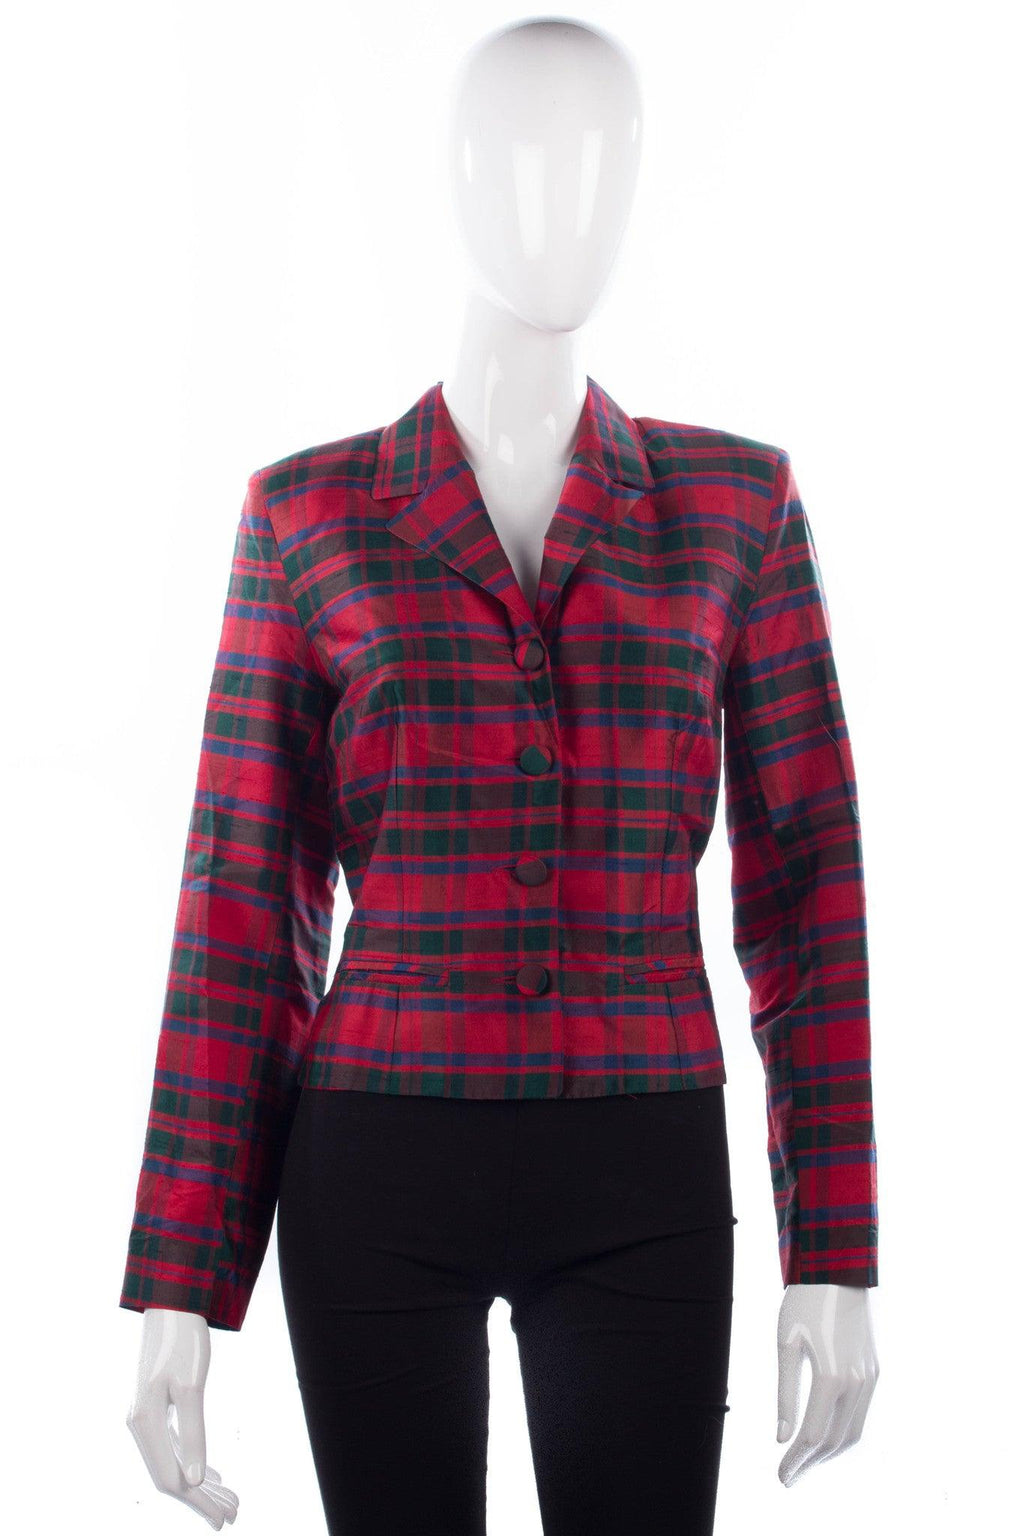 Monsoon Twilight tartan silk jacket size 12